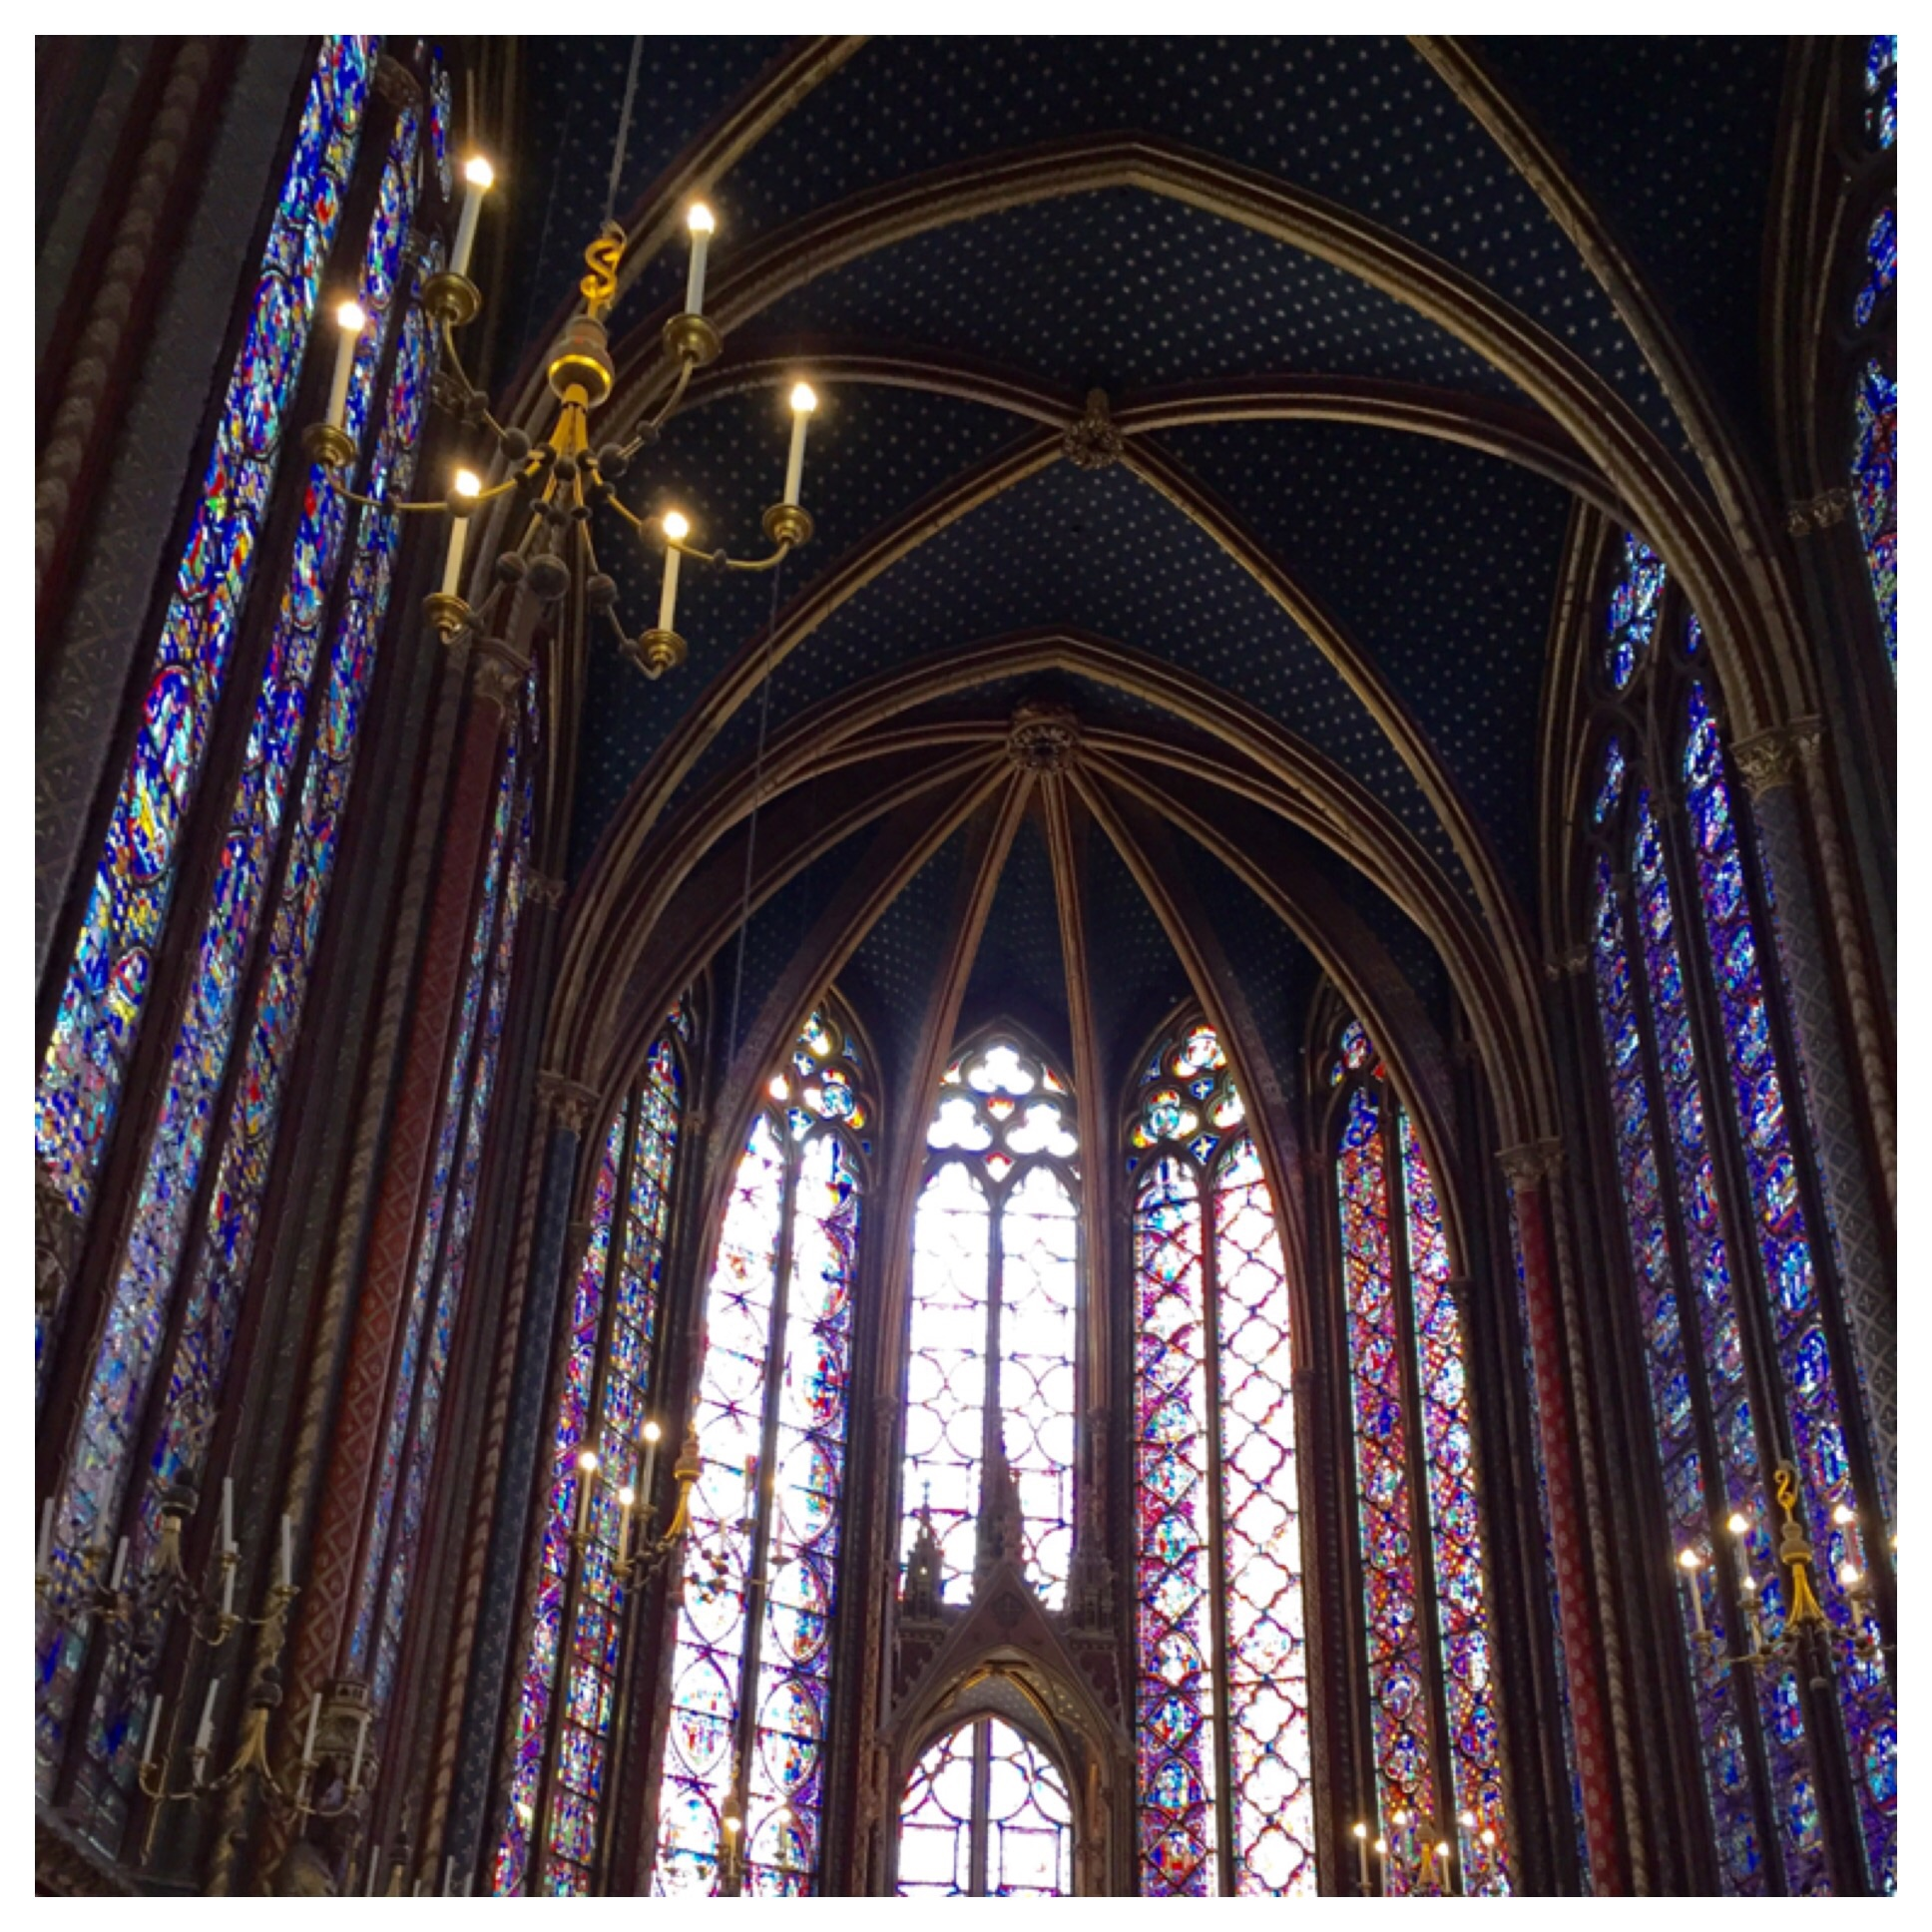 1113 scenes depicted in its 15 floor to ceiling stained-glass windows.